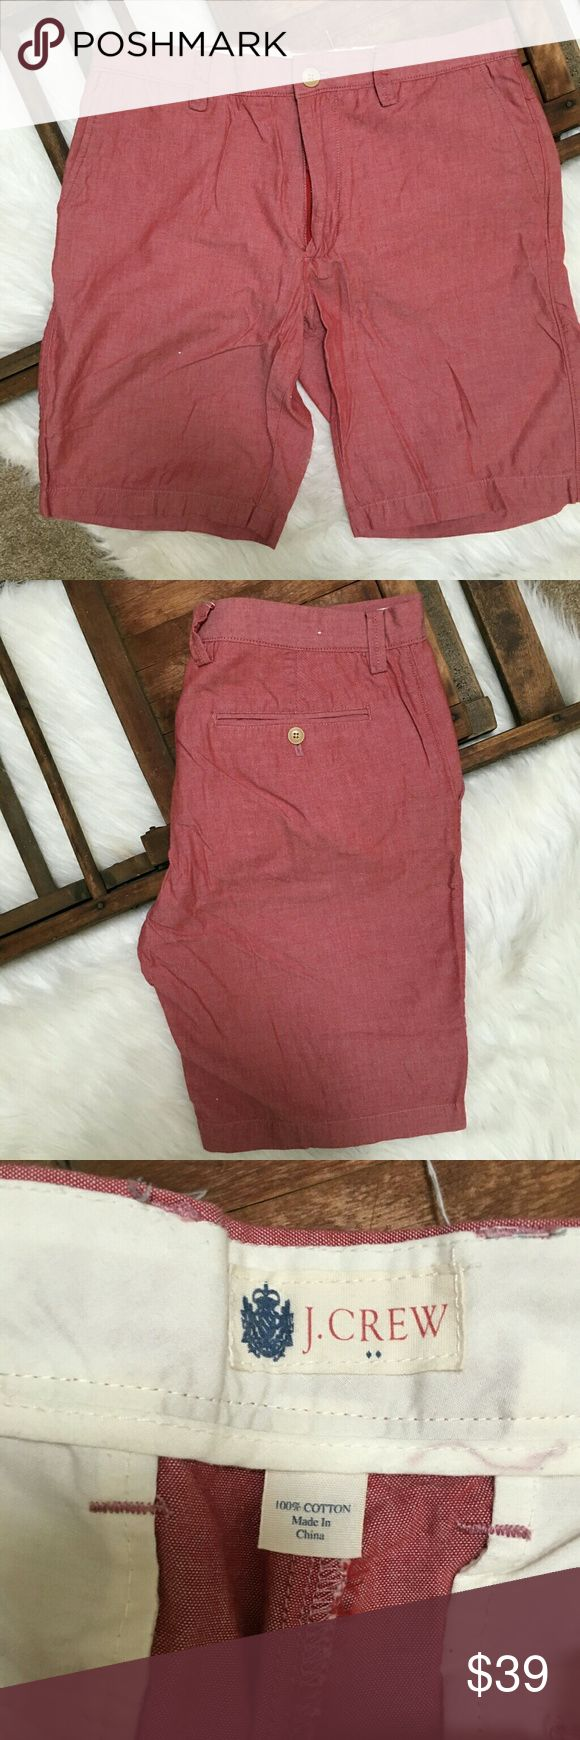 J Crew casual red shorts men's 33 NWOT shorts.  Casual red color meaning they look like linen, but are cotton. J. Crew Shorts Flat Front